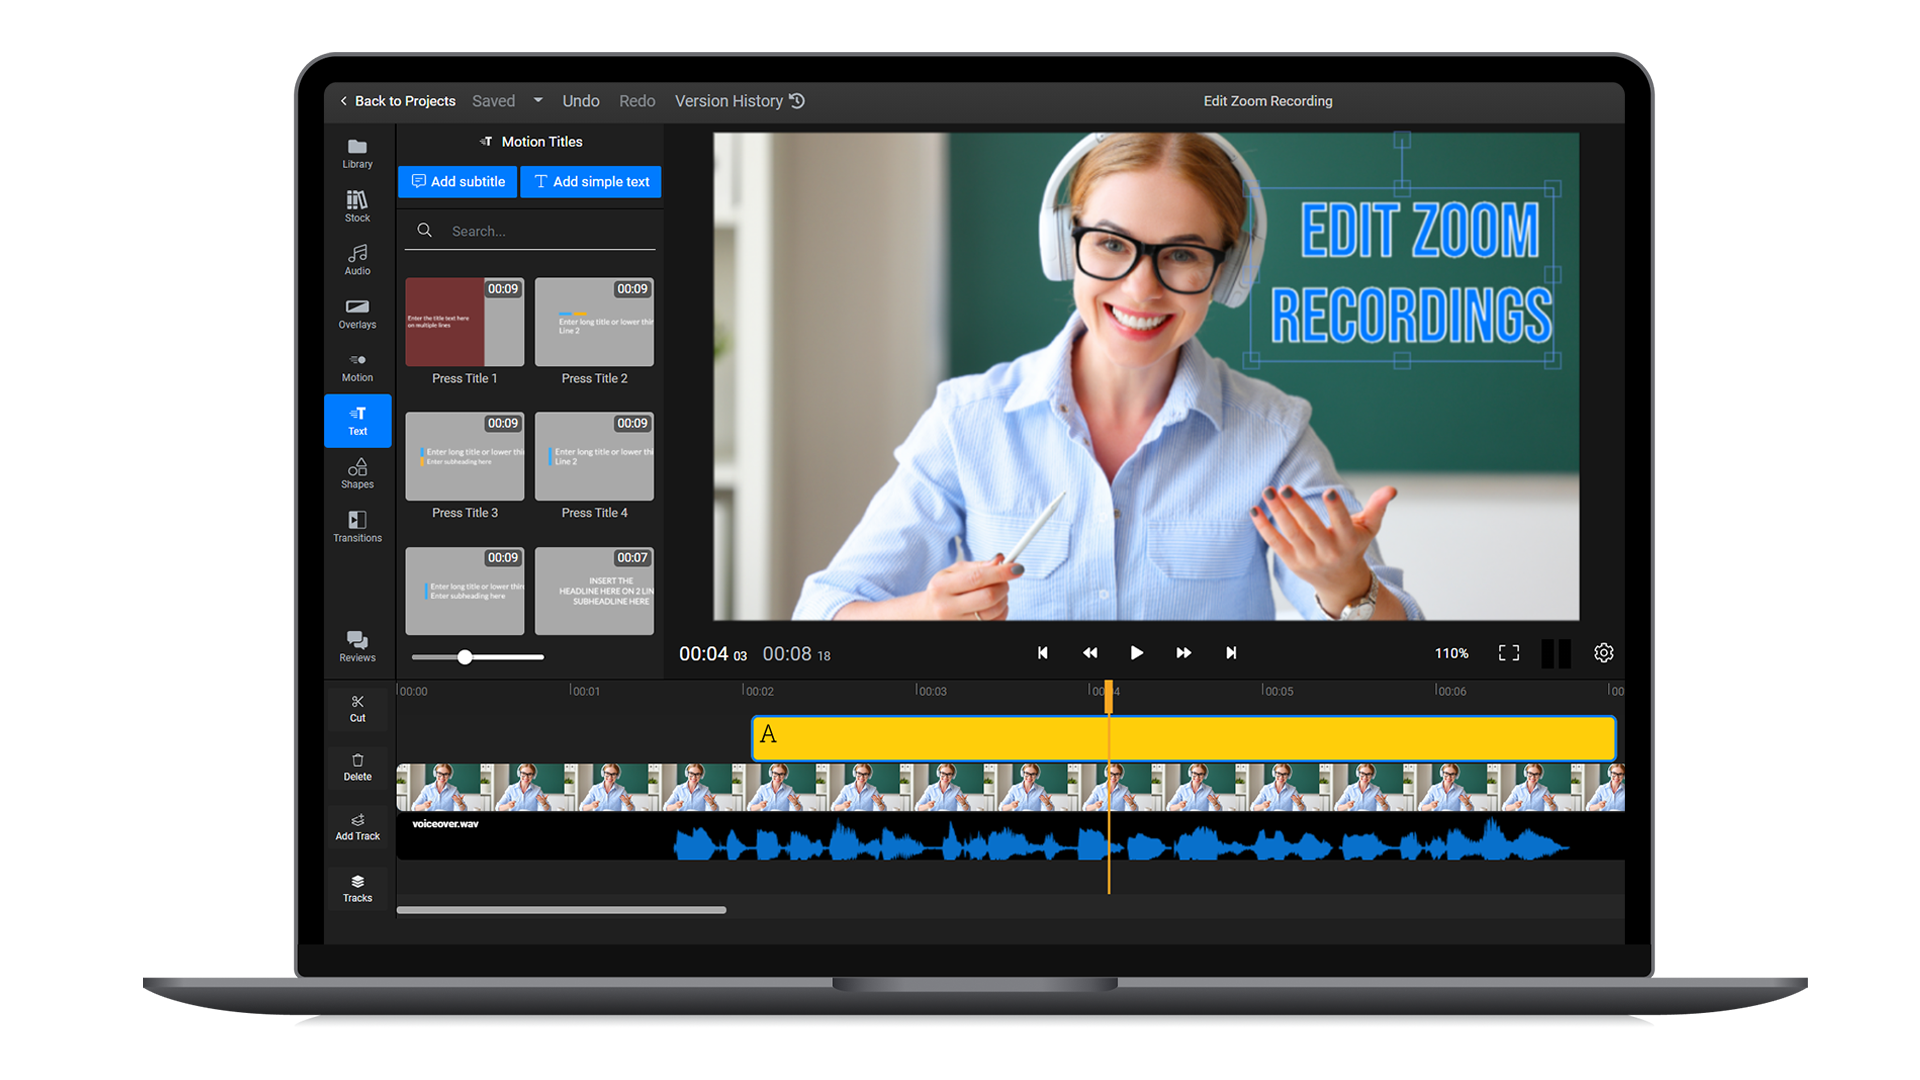 How to edit Zoom recordings